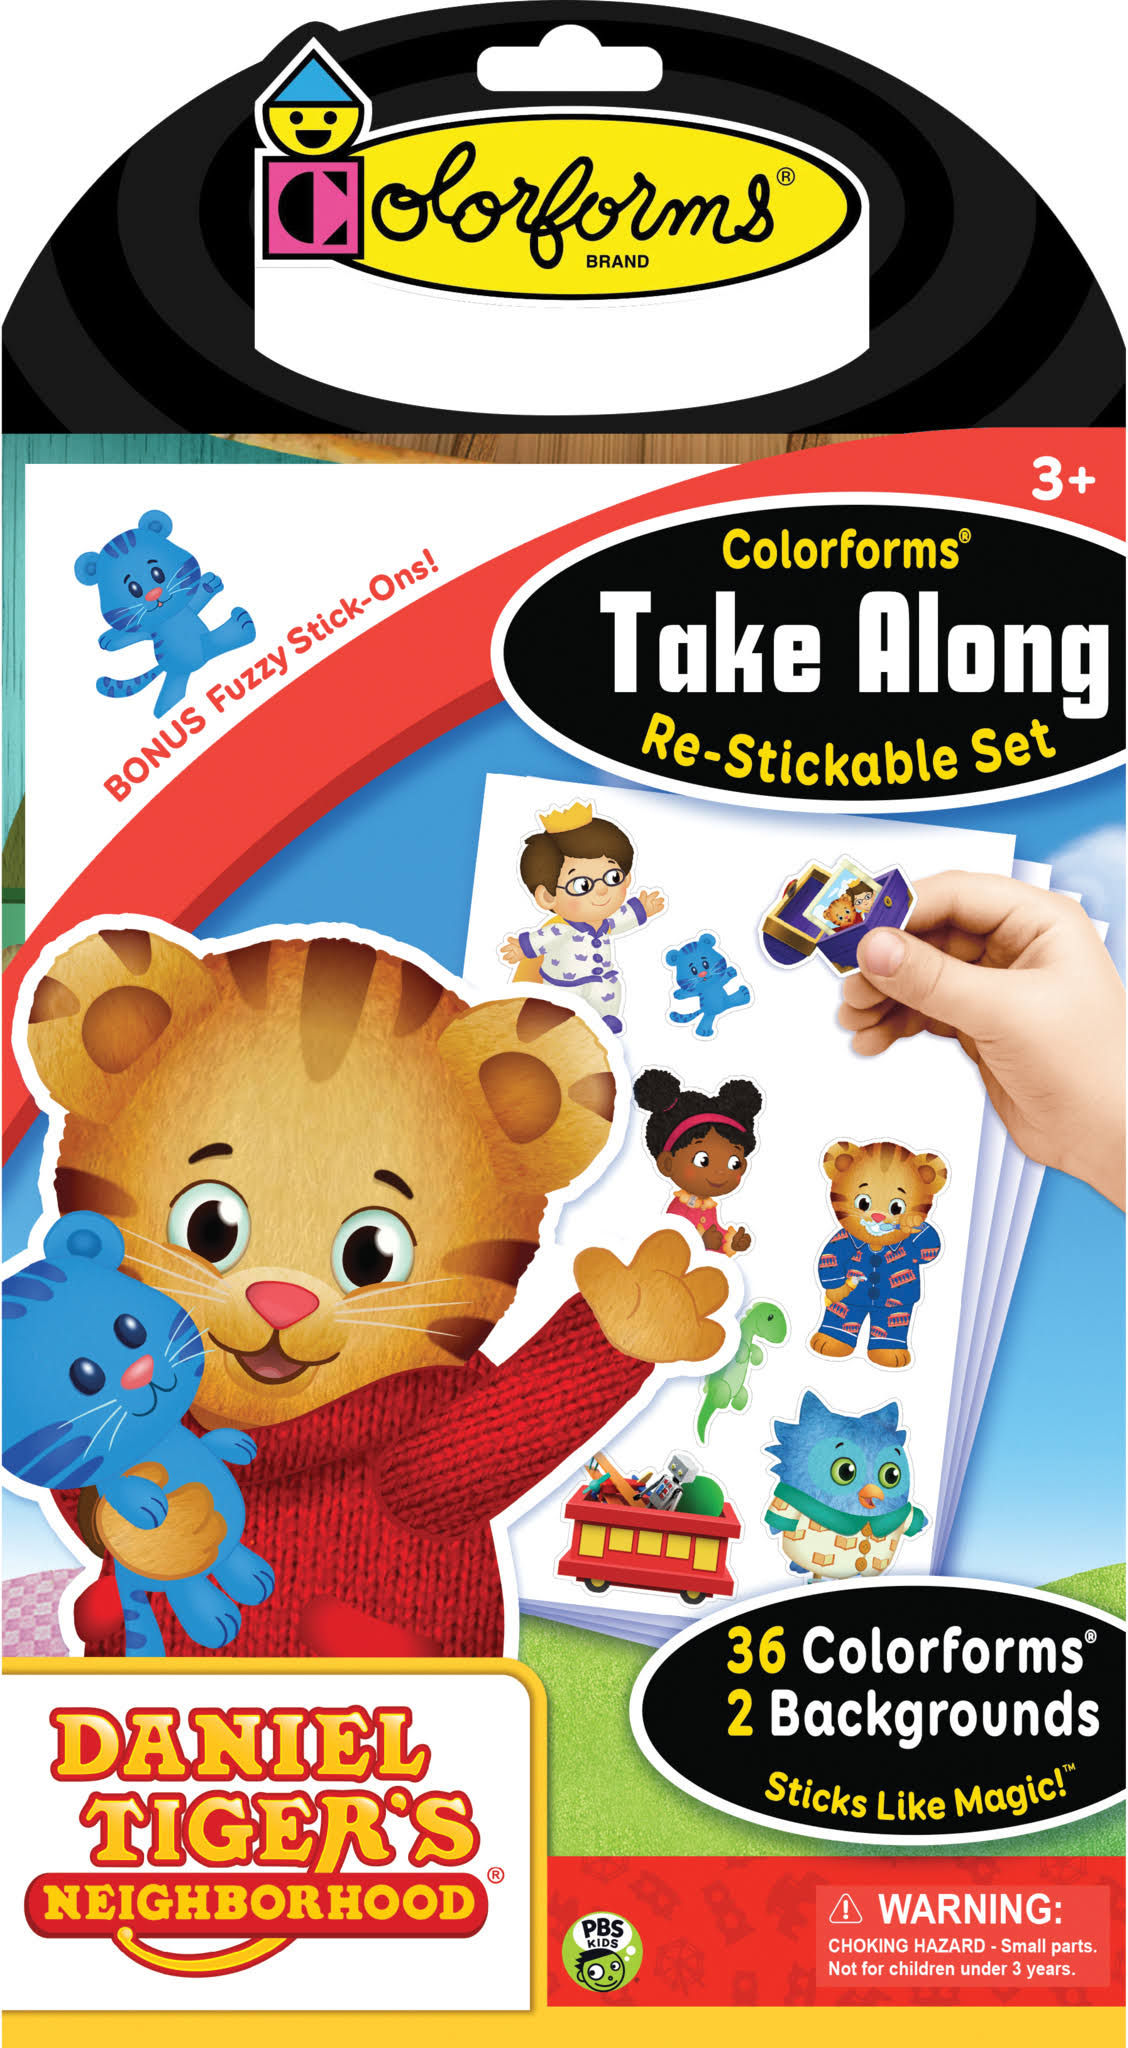 Colorforms Take Along Re-stickable Sticker Set - Daniel Tiger